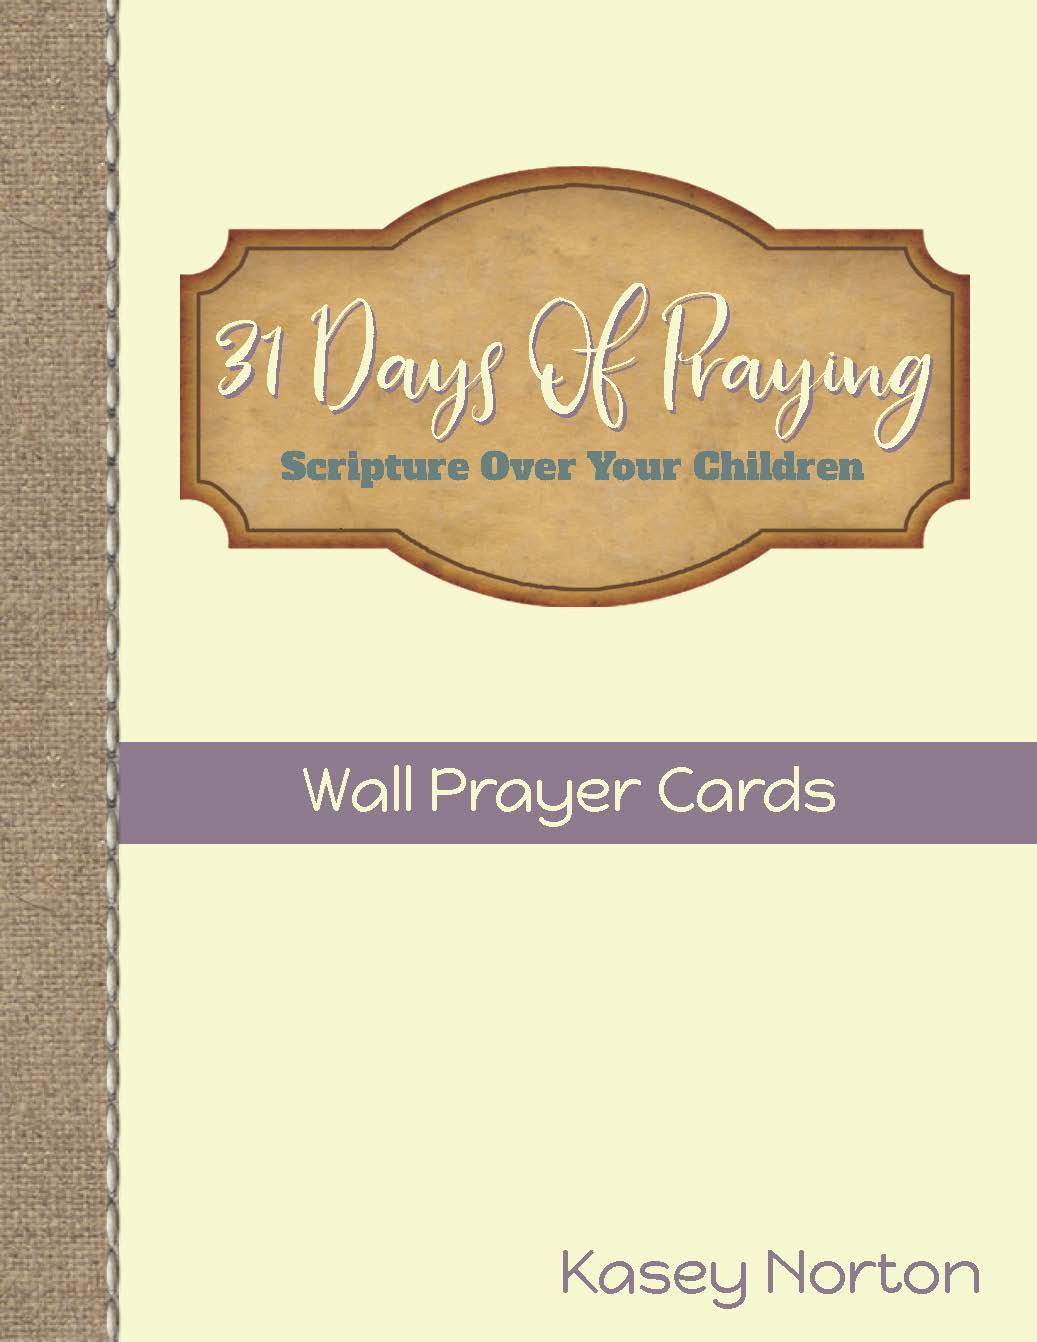 31 Days of Praying - Wall Prayer Cards